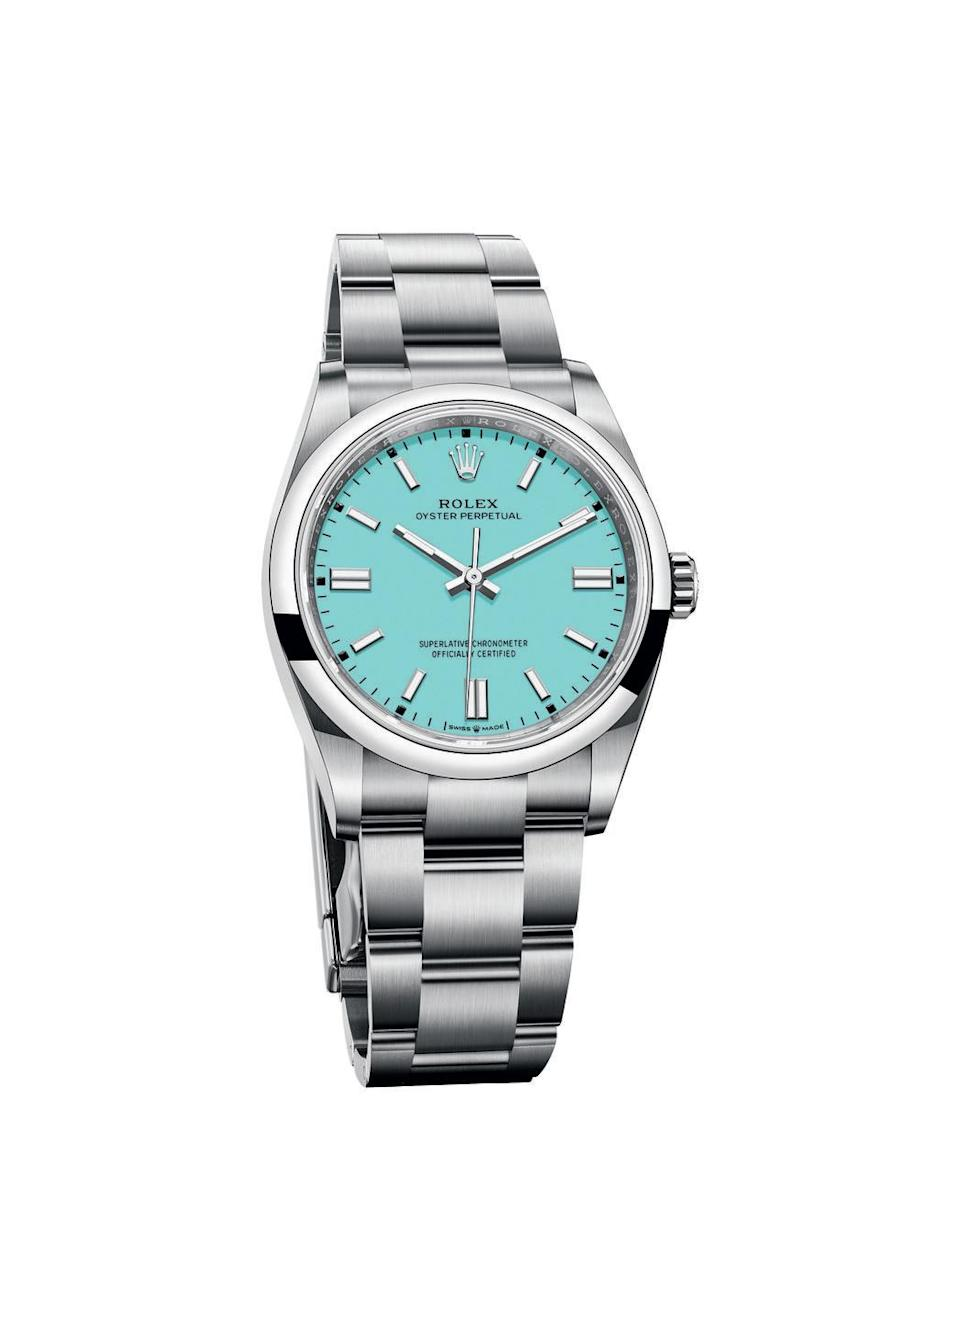 "<p><a class=""link rapid-noclick-resp"" href=""https://www.rolex.com/watches/oyster-perpetual/m126000-0006.html"" rel=""nofollow noopener"" target=""_blank"" data-ylk=""slk:SHOP NOW"">SHOP NOW</a></p><p>Though some details of Rolex's Oyster Perpetual are brand new, like its colourful dial (available in an array of bright hues, including pink, yellow, orange, green and turquoise blue, seen here) its design is descended from the original Oyster watch that accompanied Mercedes Gleitz, the first woman to swim the Channel, on her record-breaking 1927 feat. </p><p>Oyster Perpetual 36mm, £4,450, <a href=""https://www.rolex.com/watches/oyster-perpetual/m126000-0006.html"" rel=""nofollow noopener"" target=""_blank"" data-ylk=""slk:Rolex"" class=""link rapid-noclick-resp"">Rolex</a></p>"